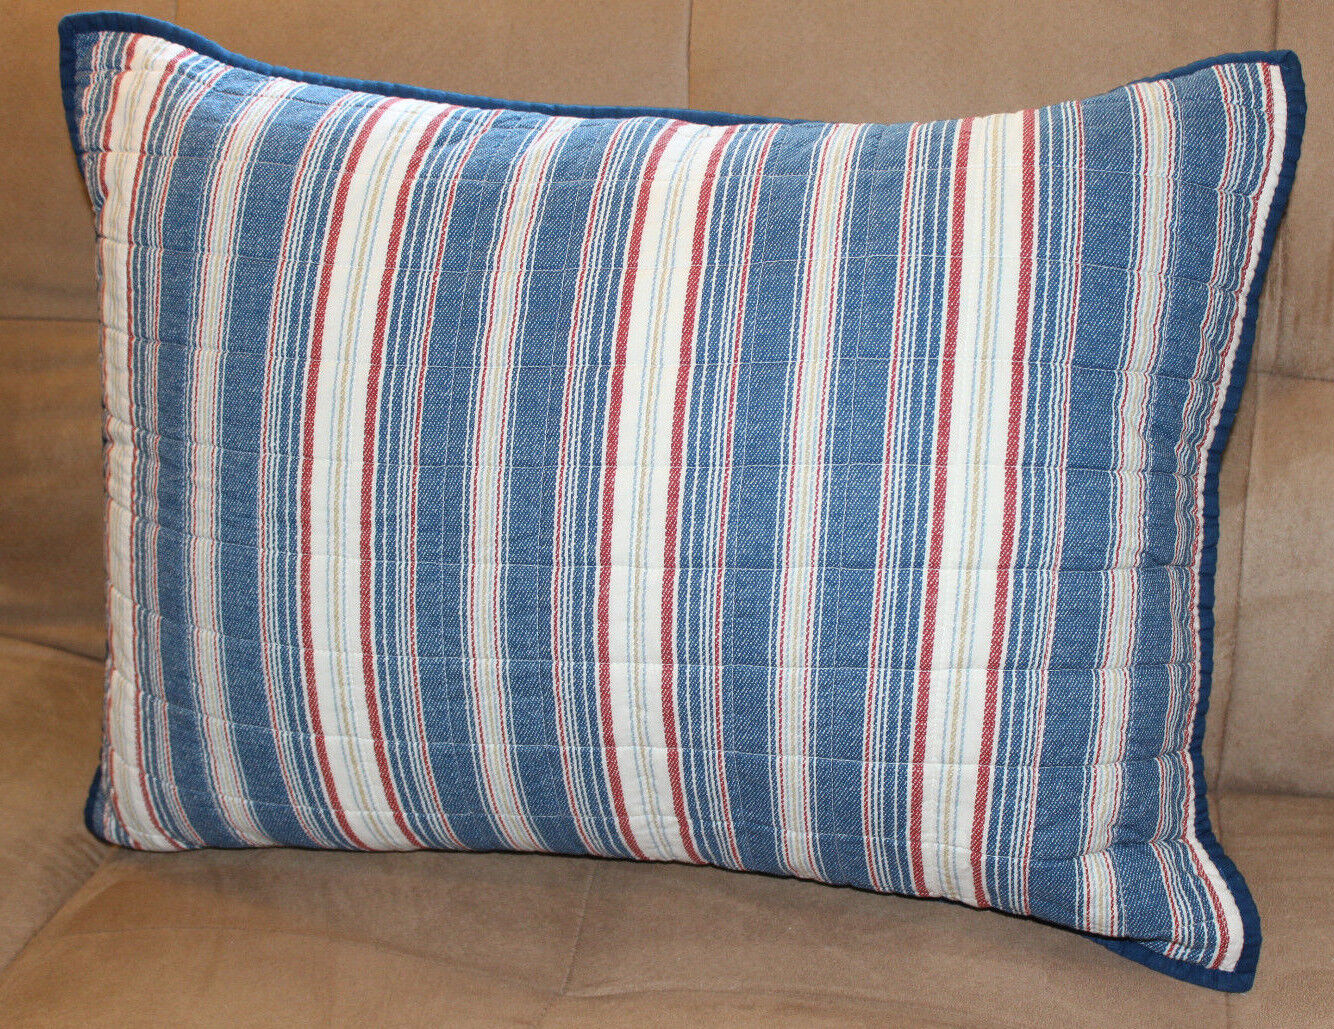 Nautica Quilted Pillow Shams Striped Red White blueeee Standard Pair